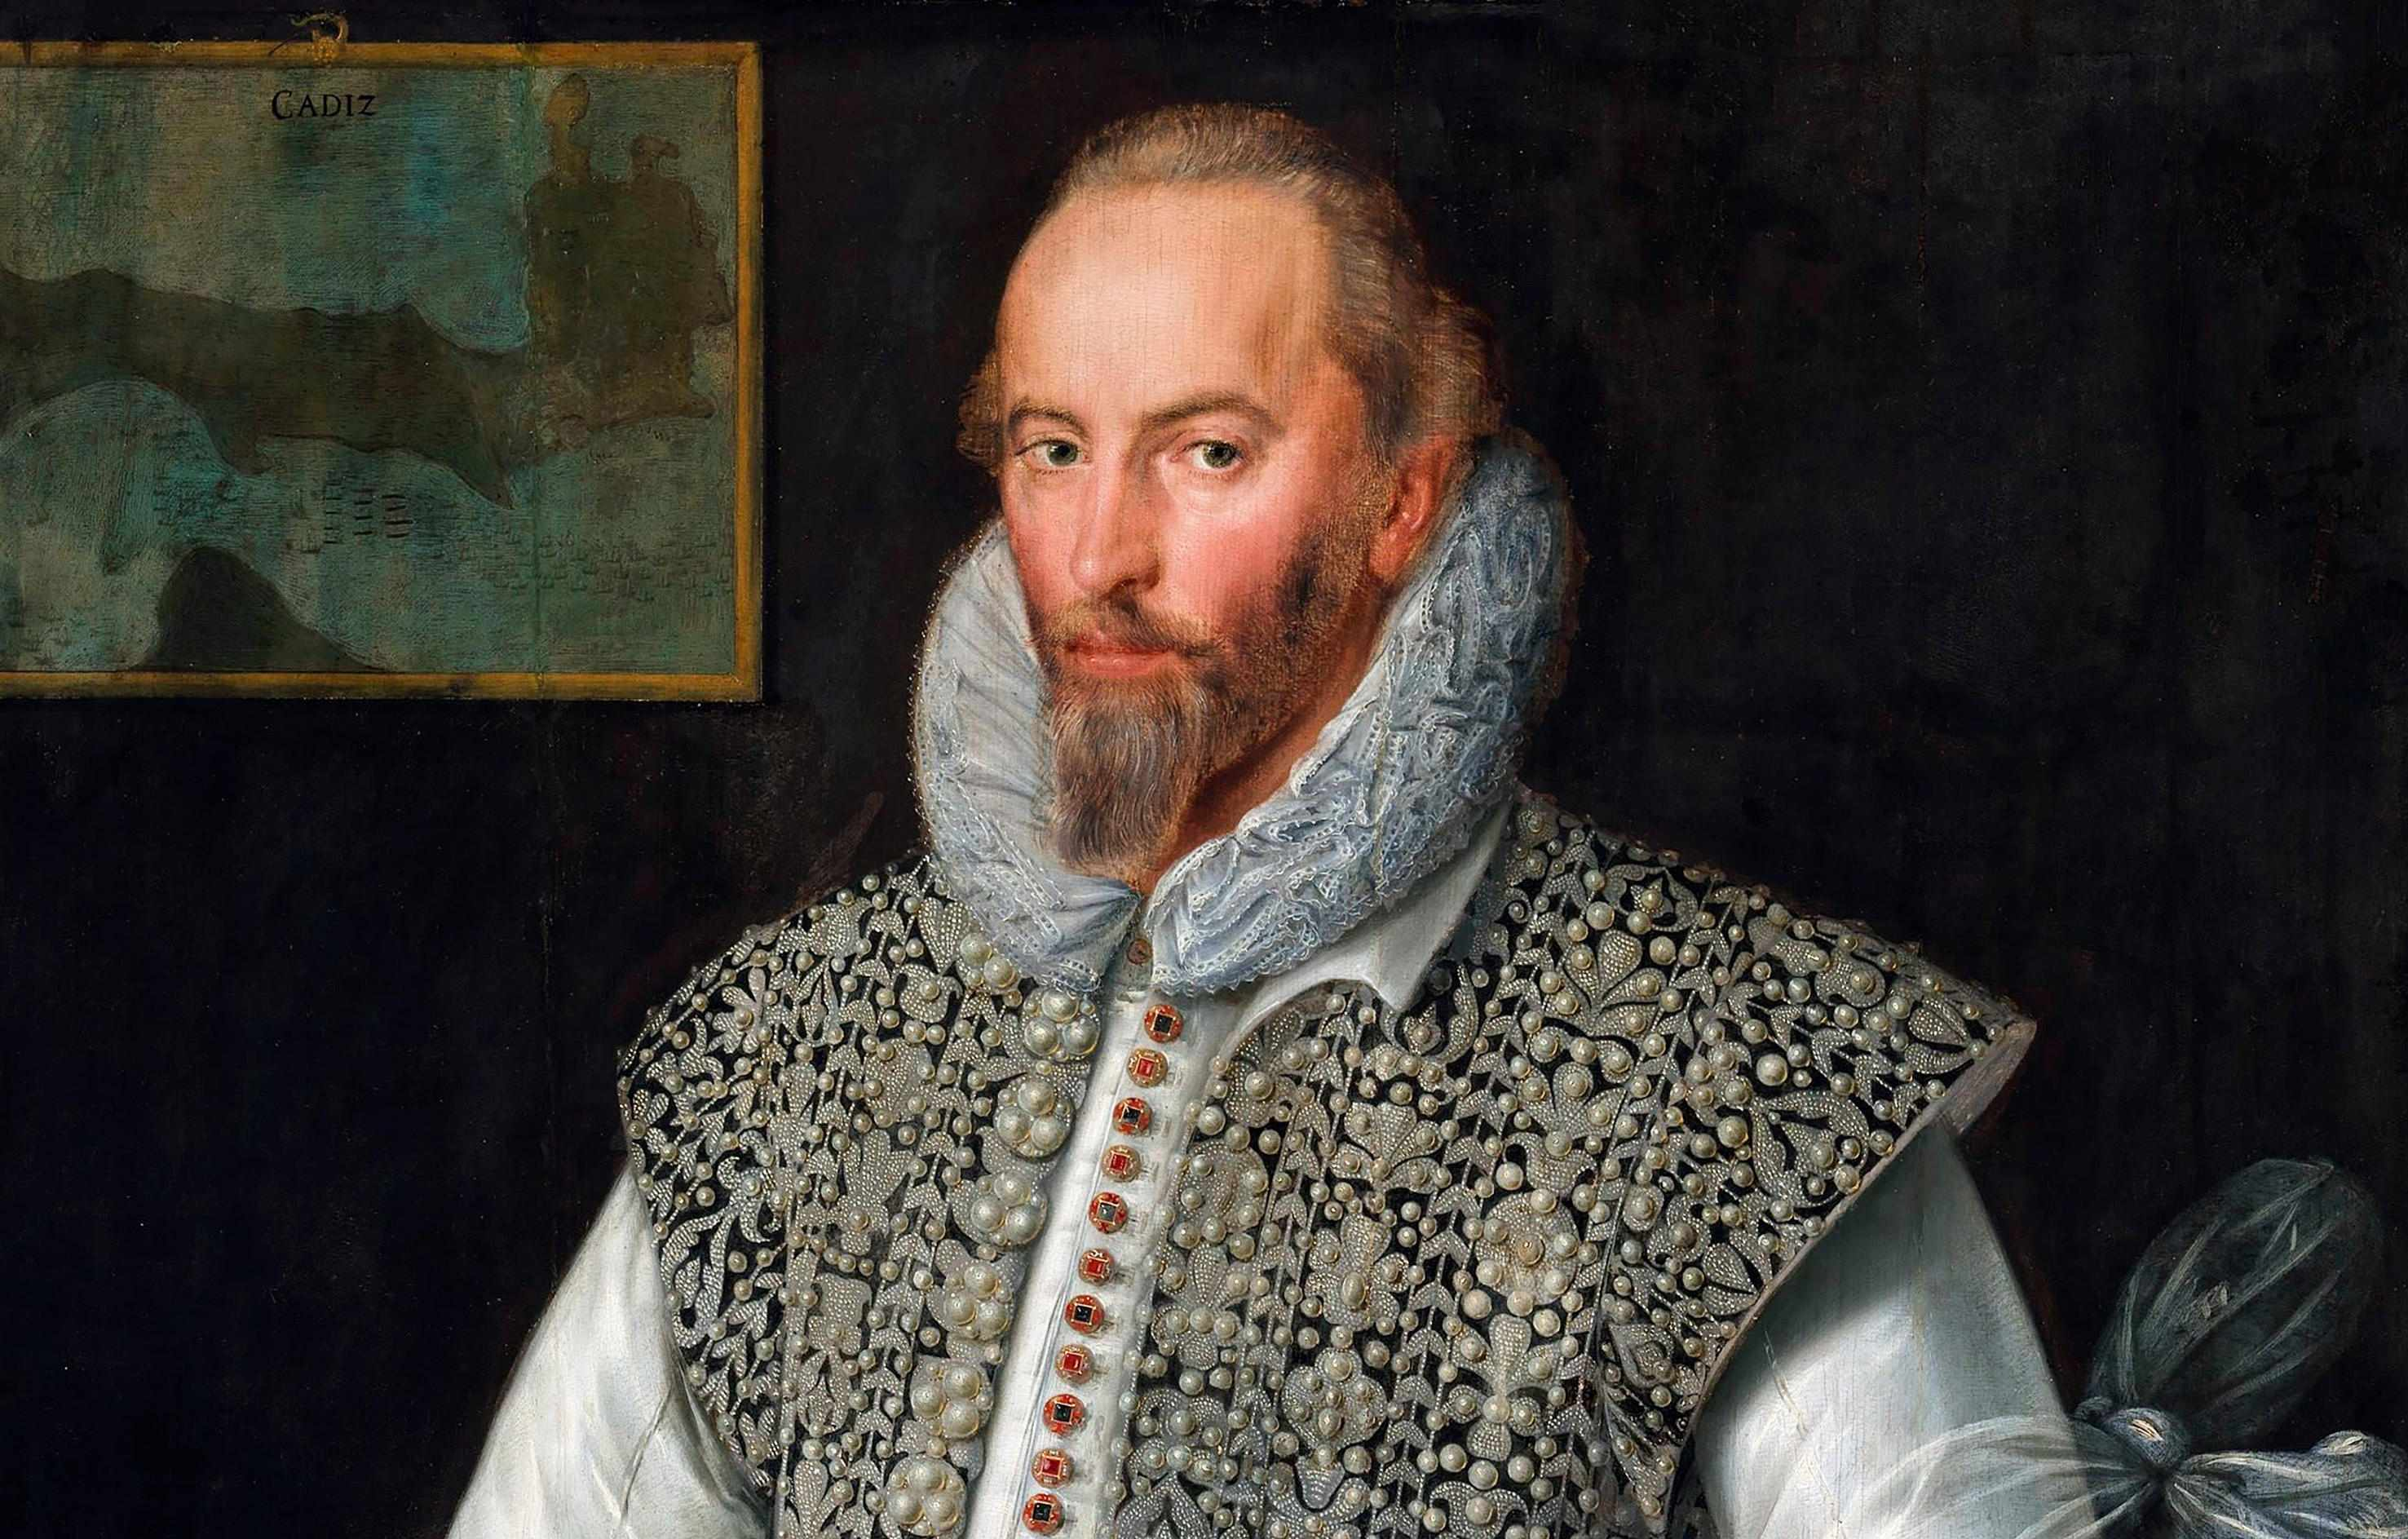 Sir Walter Ralegh (c1554–1618, shown here in a painting attributed to William Segar) is often remembered as a favourite of Elizabeth I and an adventurer, yet he was also one of the most influential political philosophers of his era. (Photo by Alamy)